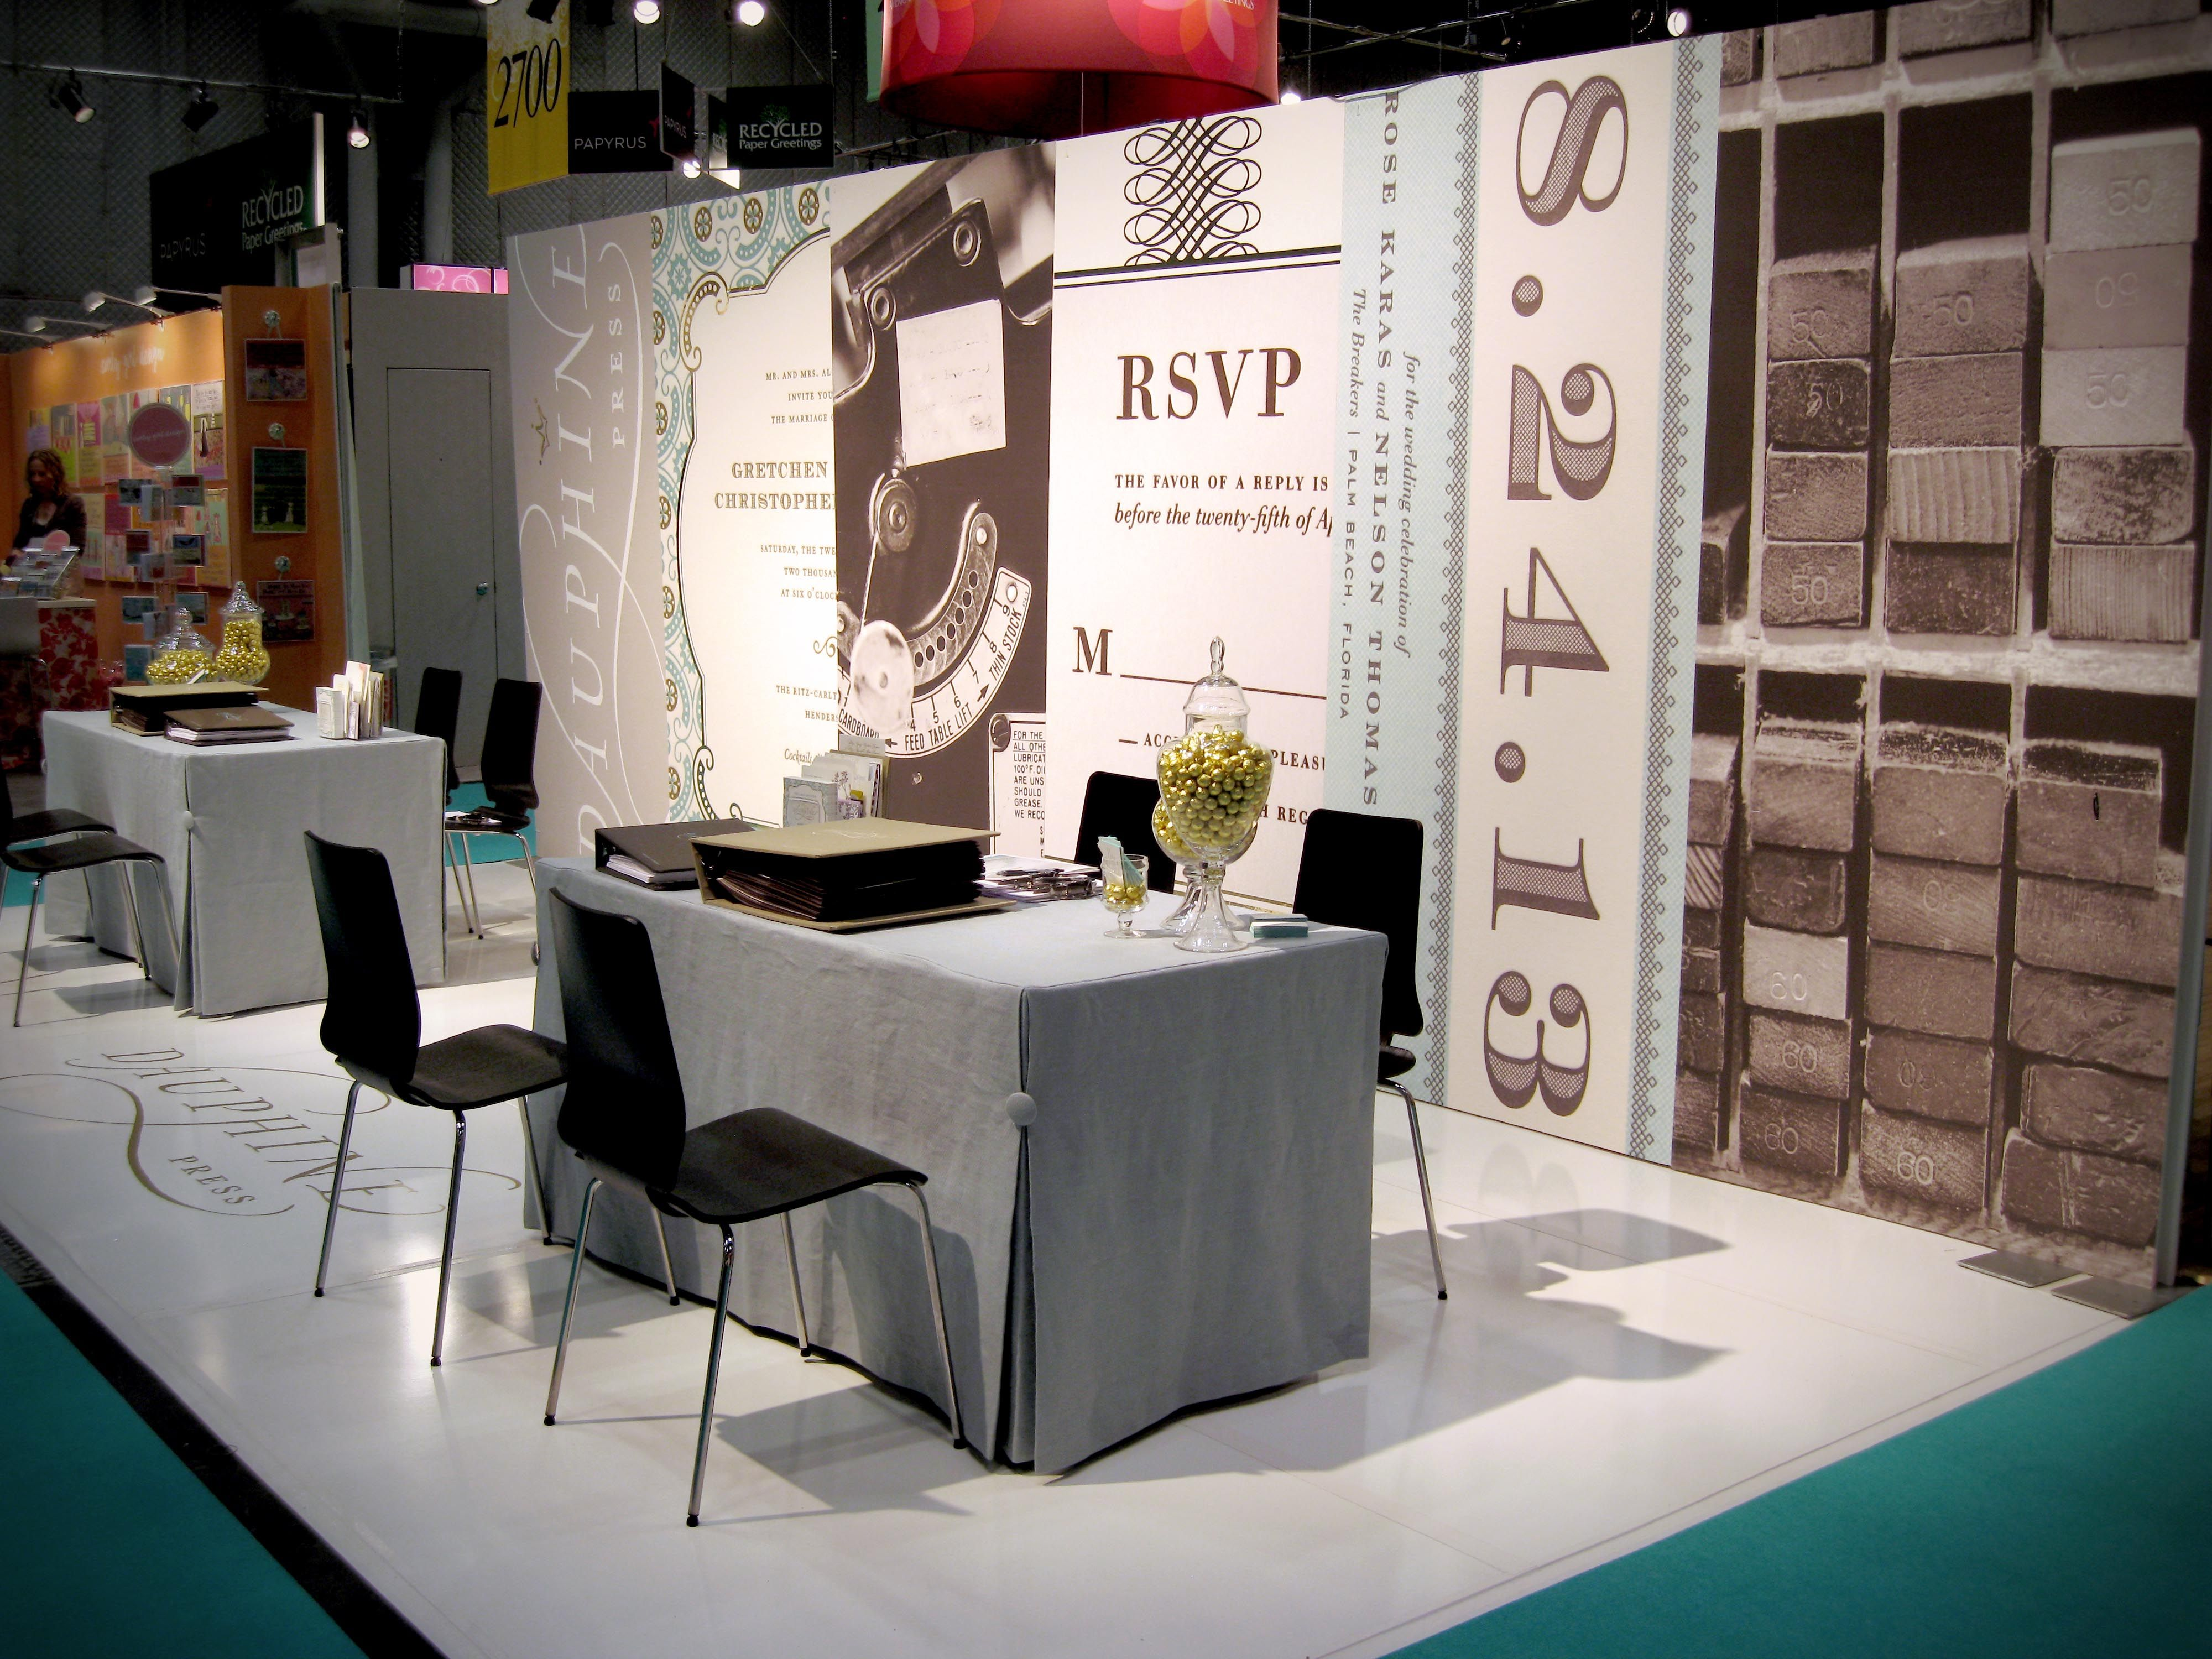 beautiful larger linen table skirts in front of the dauphine booth bridal show booth ideas babypalooza baby expo exhibitor setup ideas